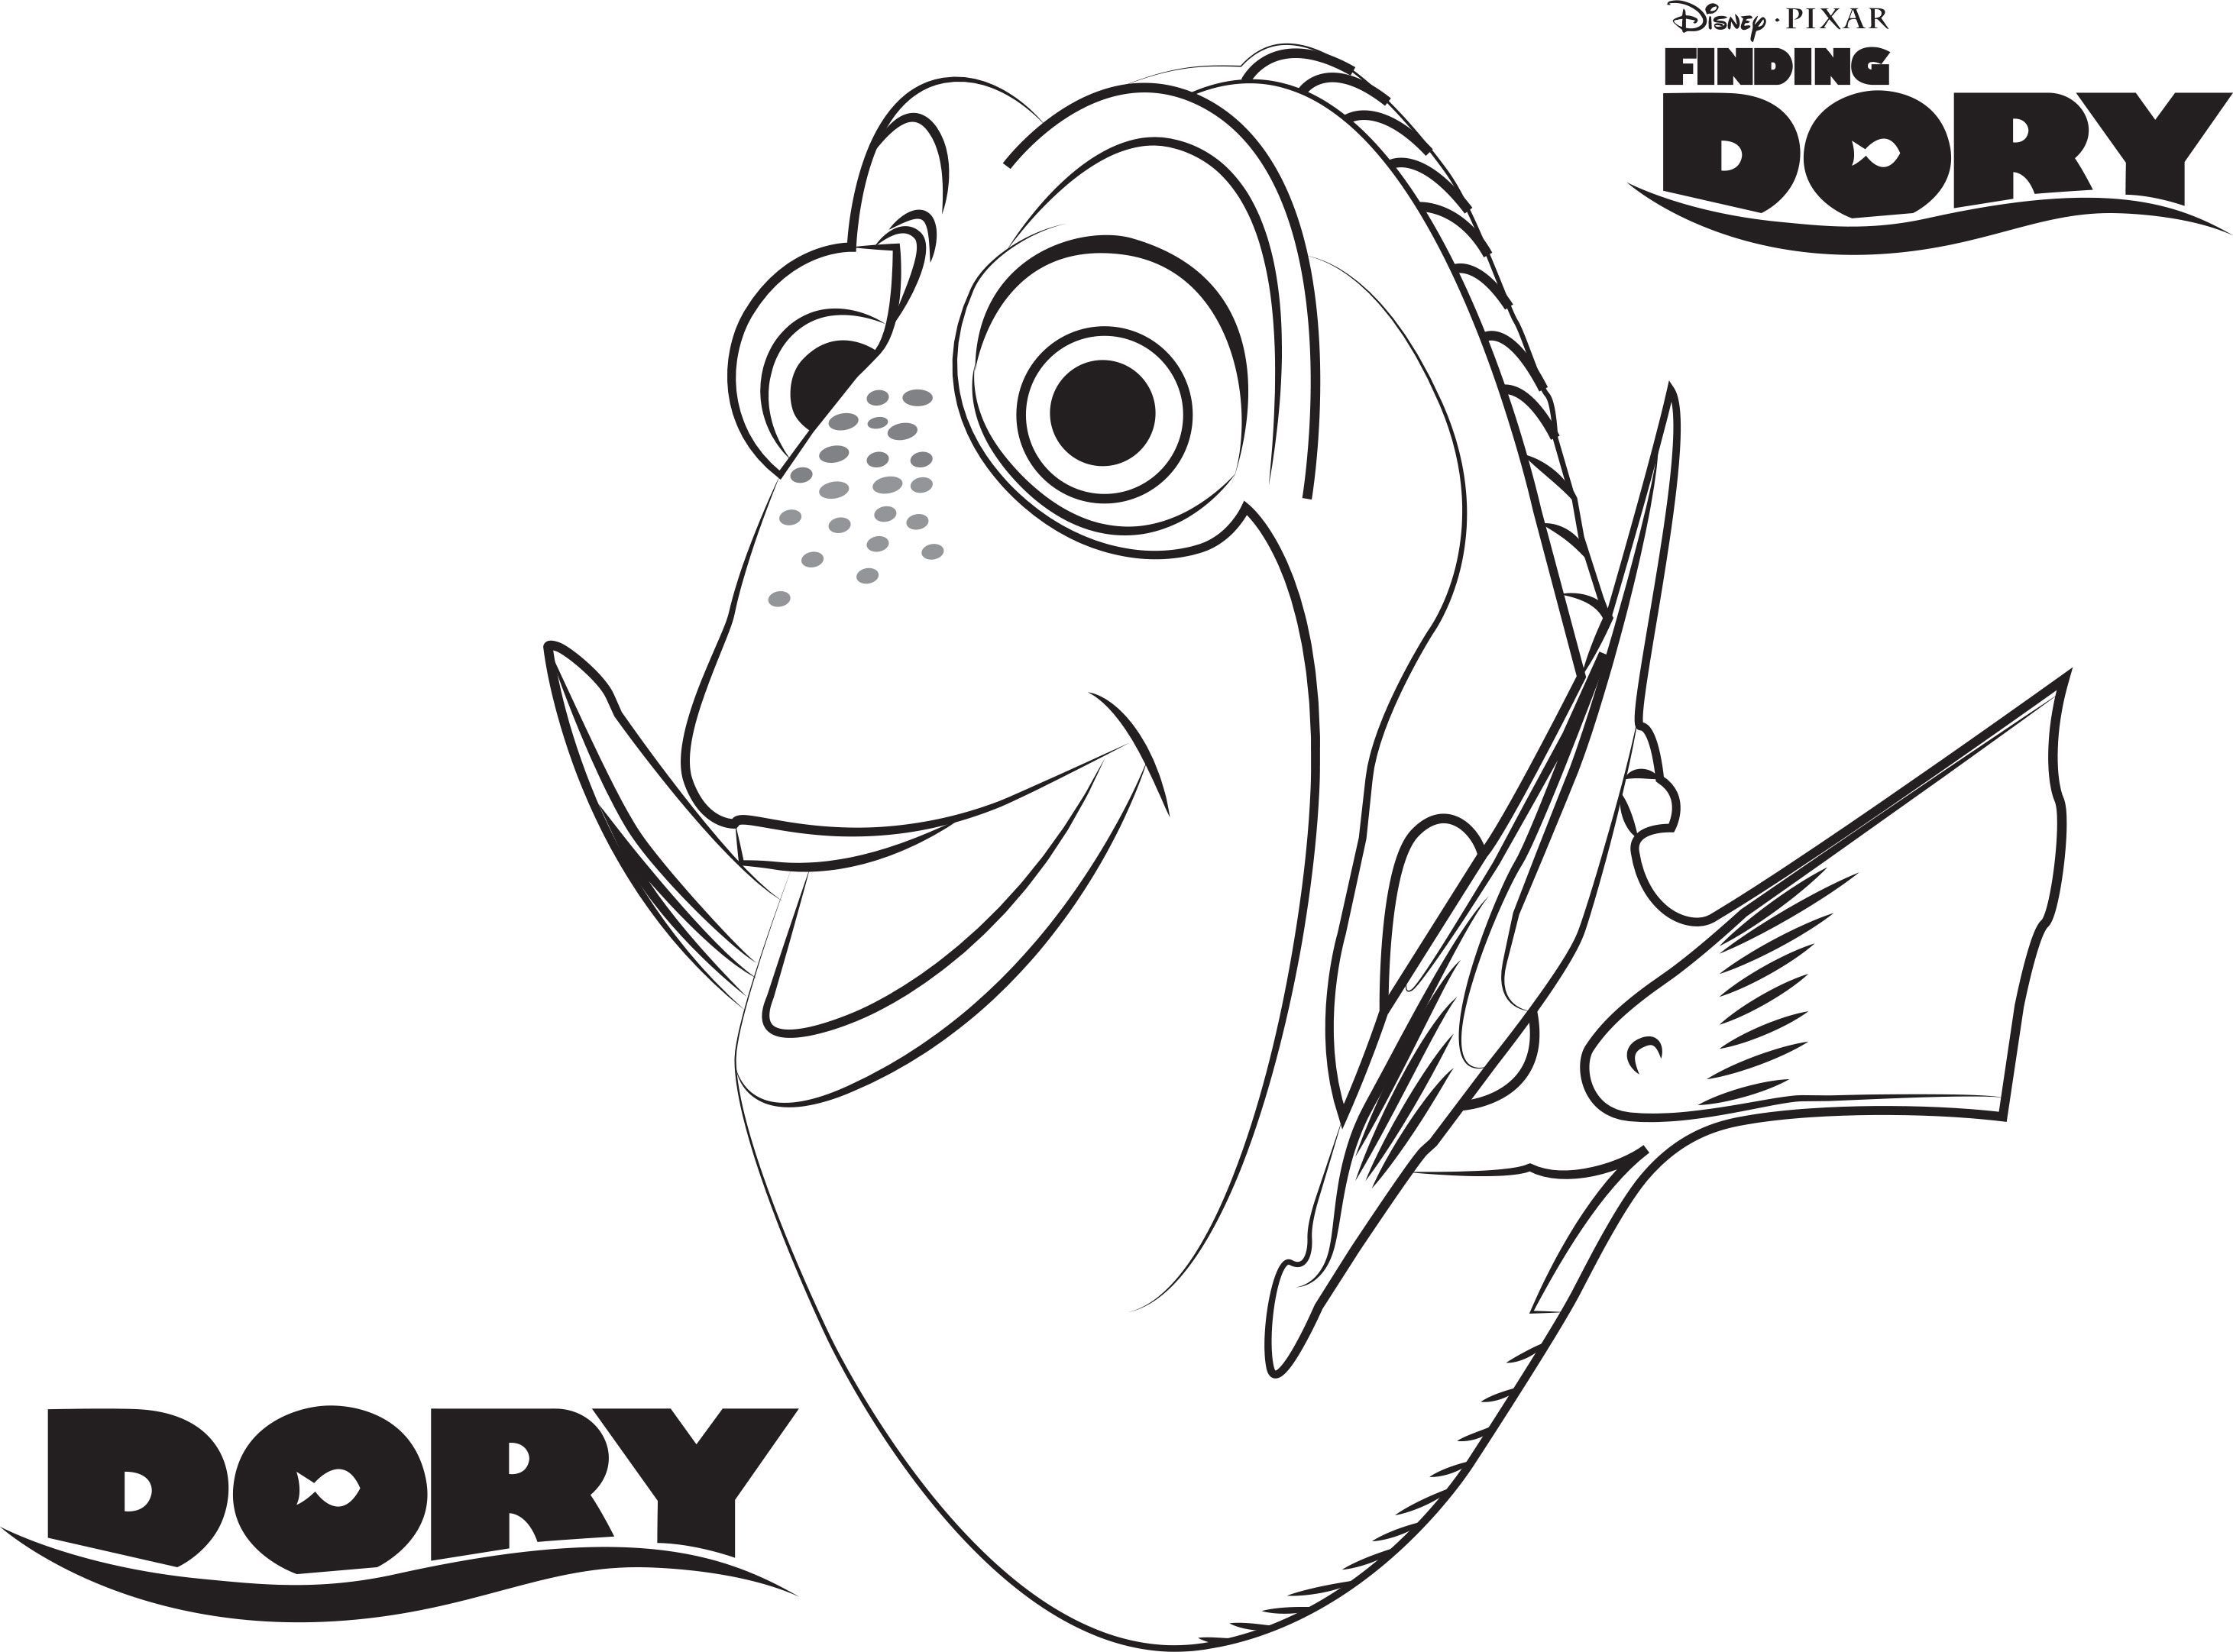 Finding Nemo Coloring Pages For 2019 Http Www Wallpaperartdesignhd Us Finding Nemo Colo Nemo Coloring Pages Finding Nemo Coloring Pages Disney Coloring Pages